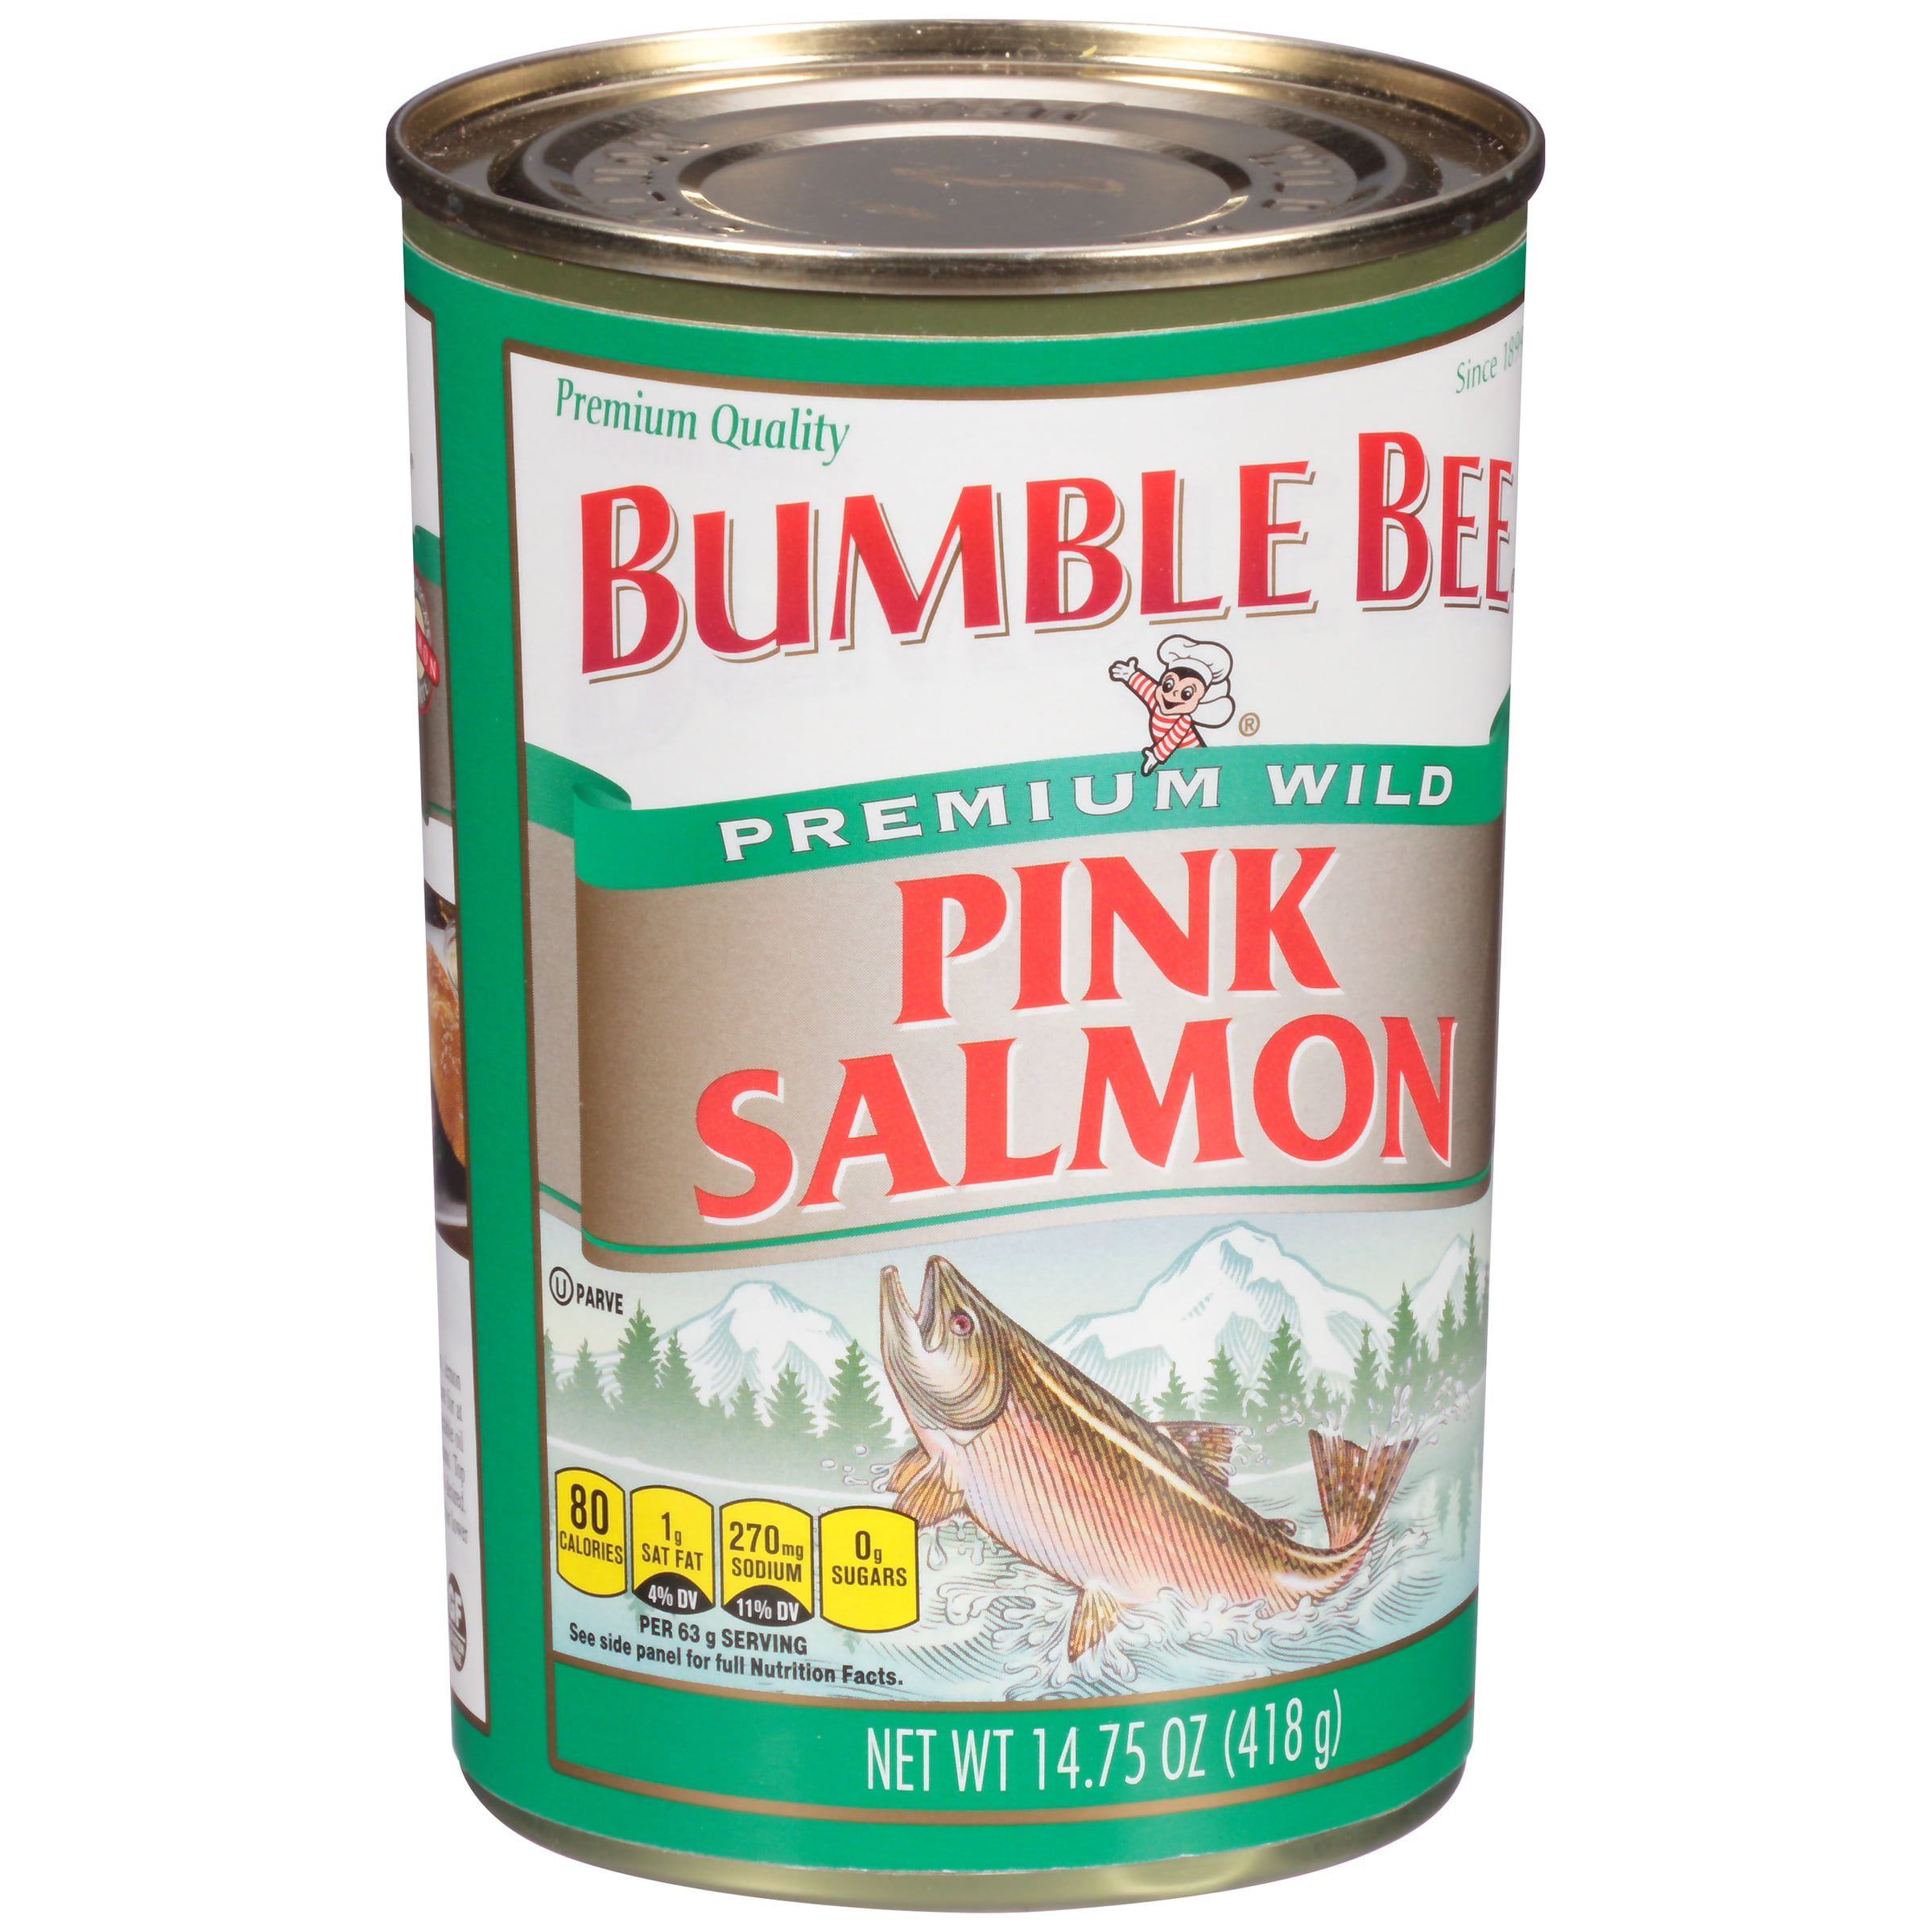 Bumble Bee Wild Pink Salmon, 14.75oz can by Bumble Bee Foods